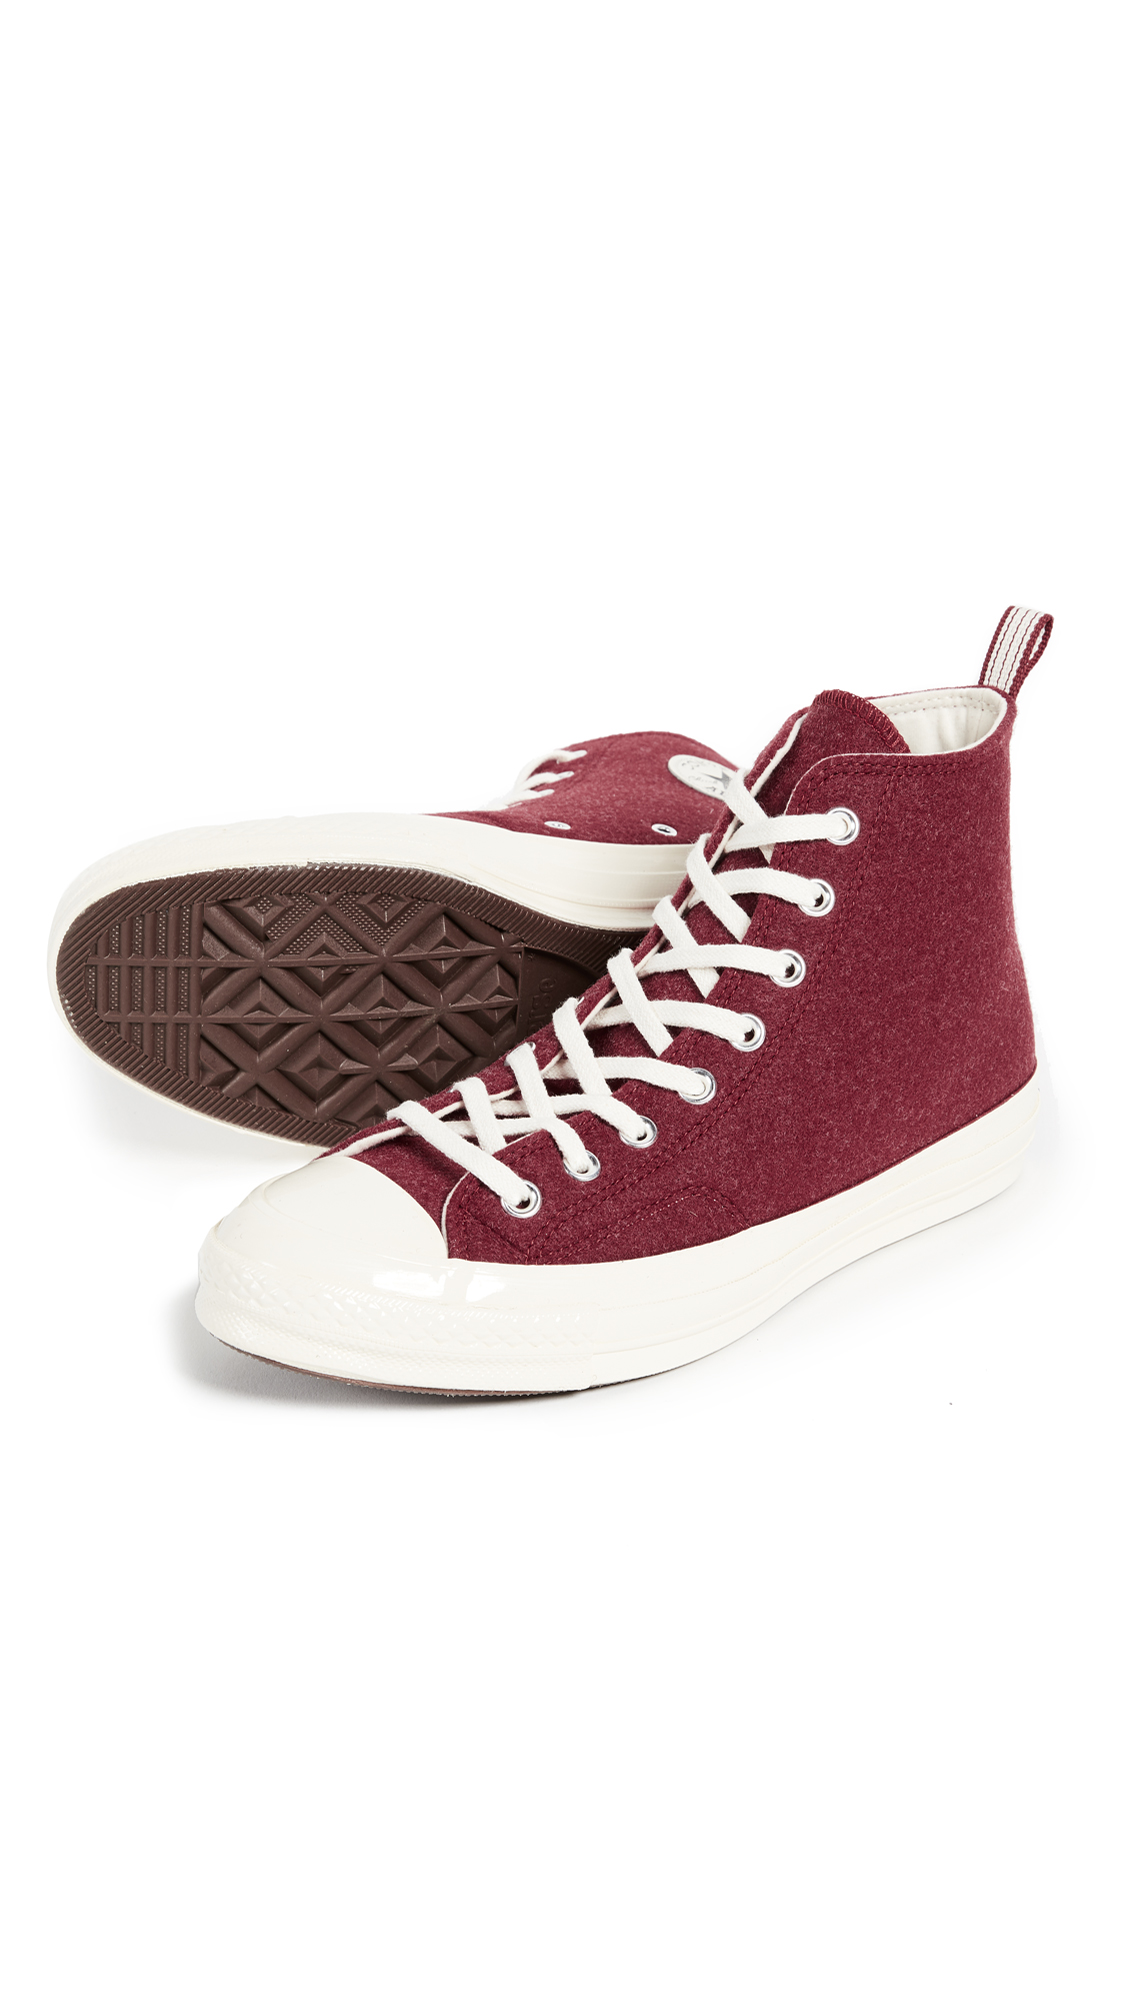 a53345b99a8 Converse Chuck Taylor  70s Heritage Felt High Top Sneakers